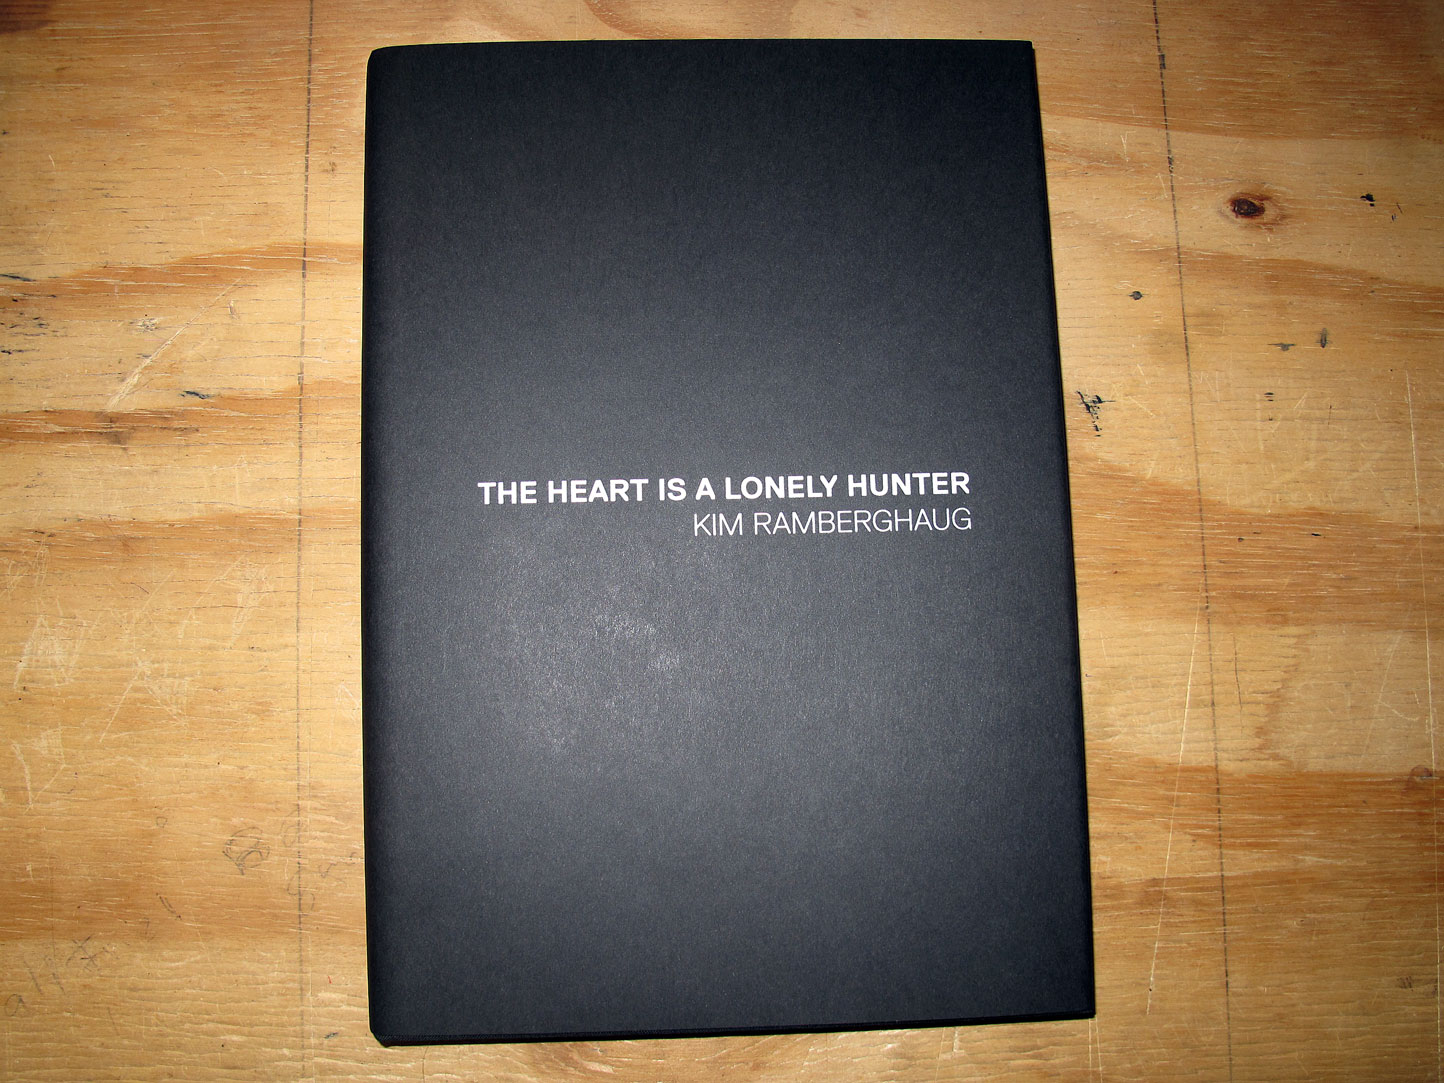 essay on the heart is a lonely hunter